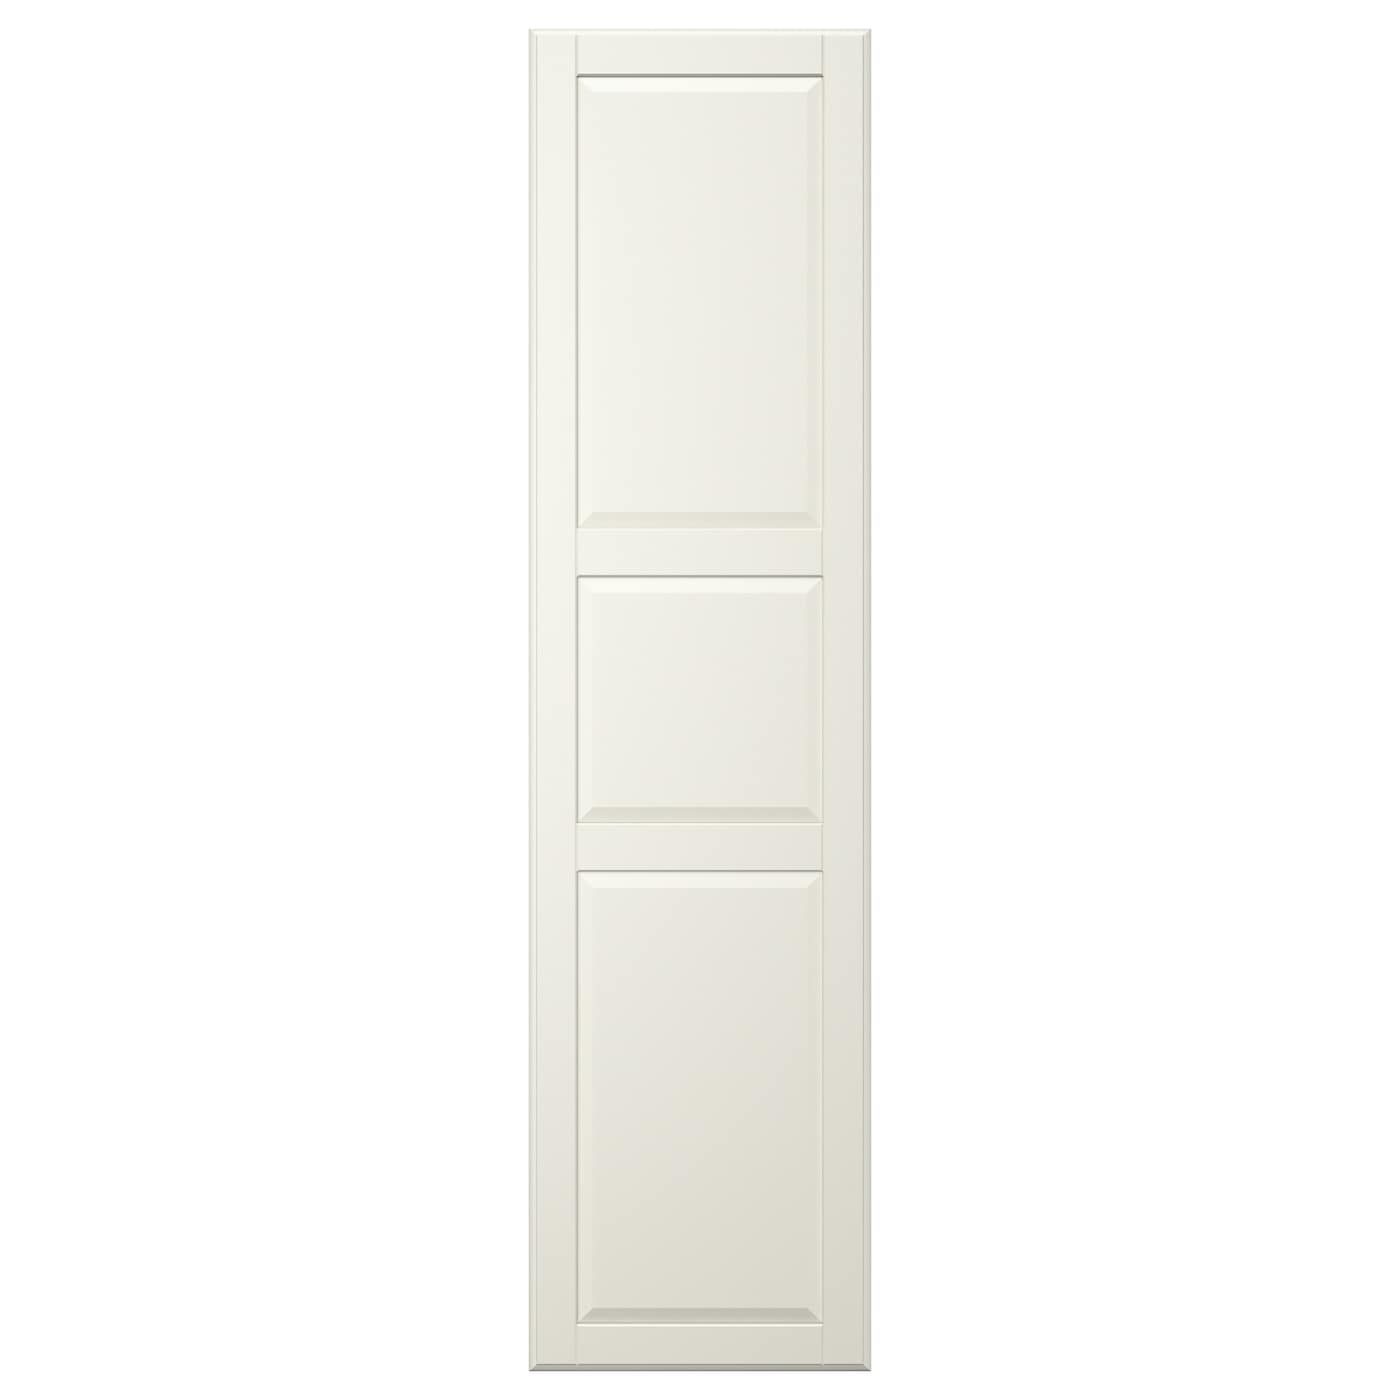 wardrobe doors hinged wardrobe doors ikea